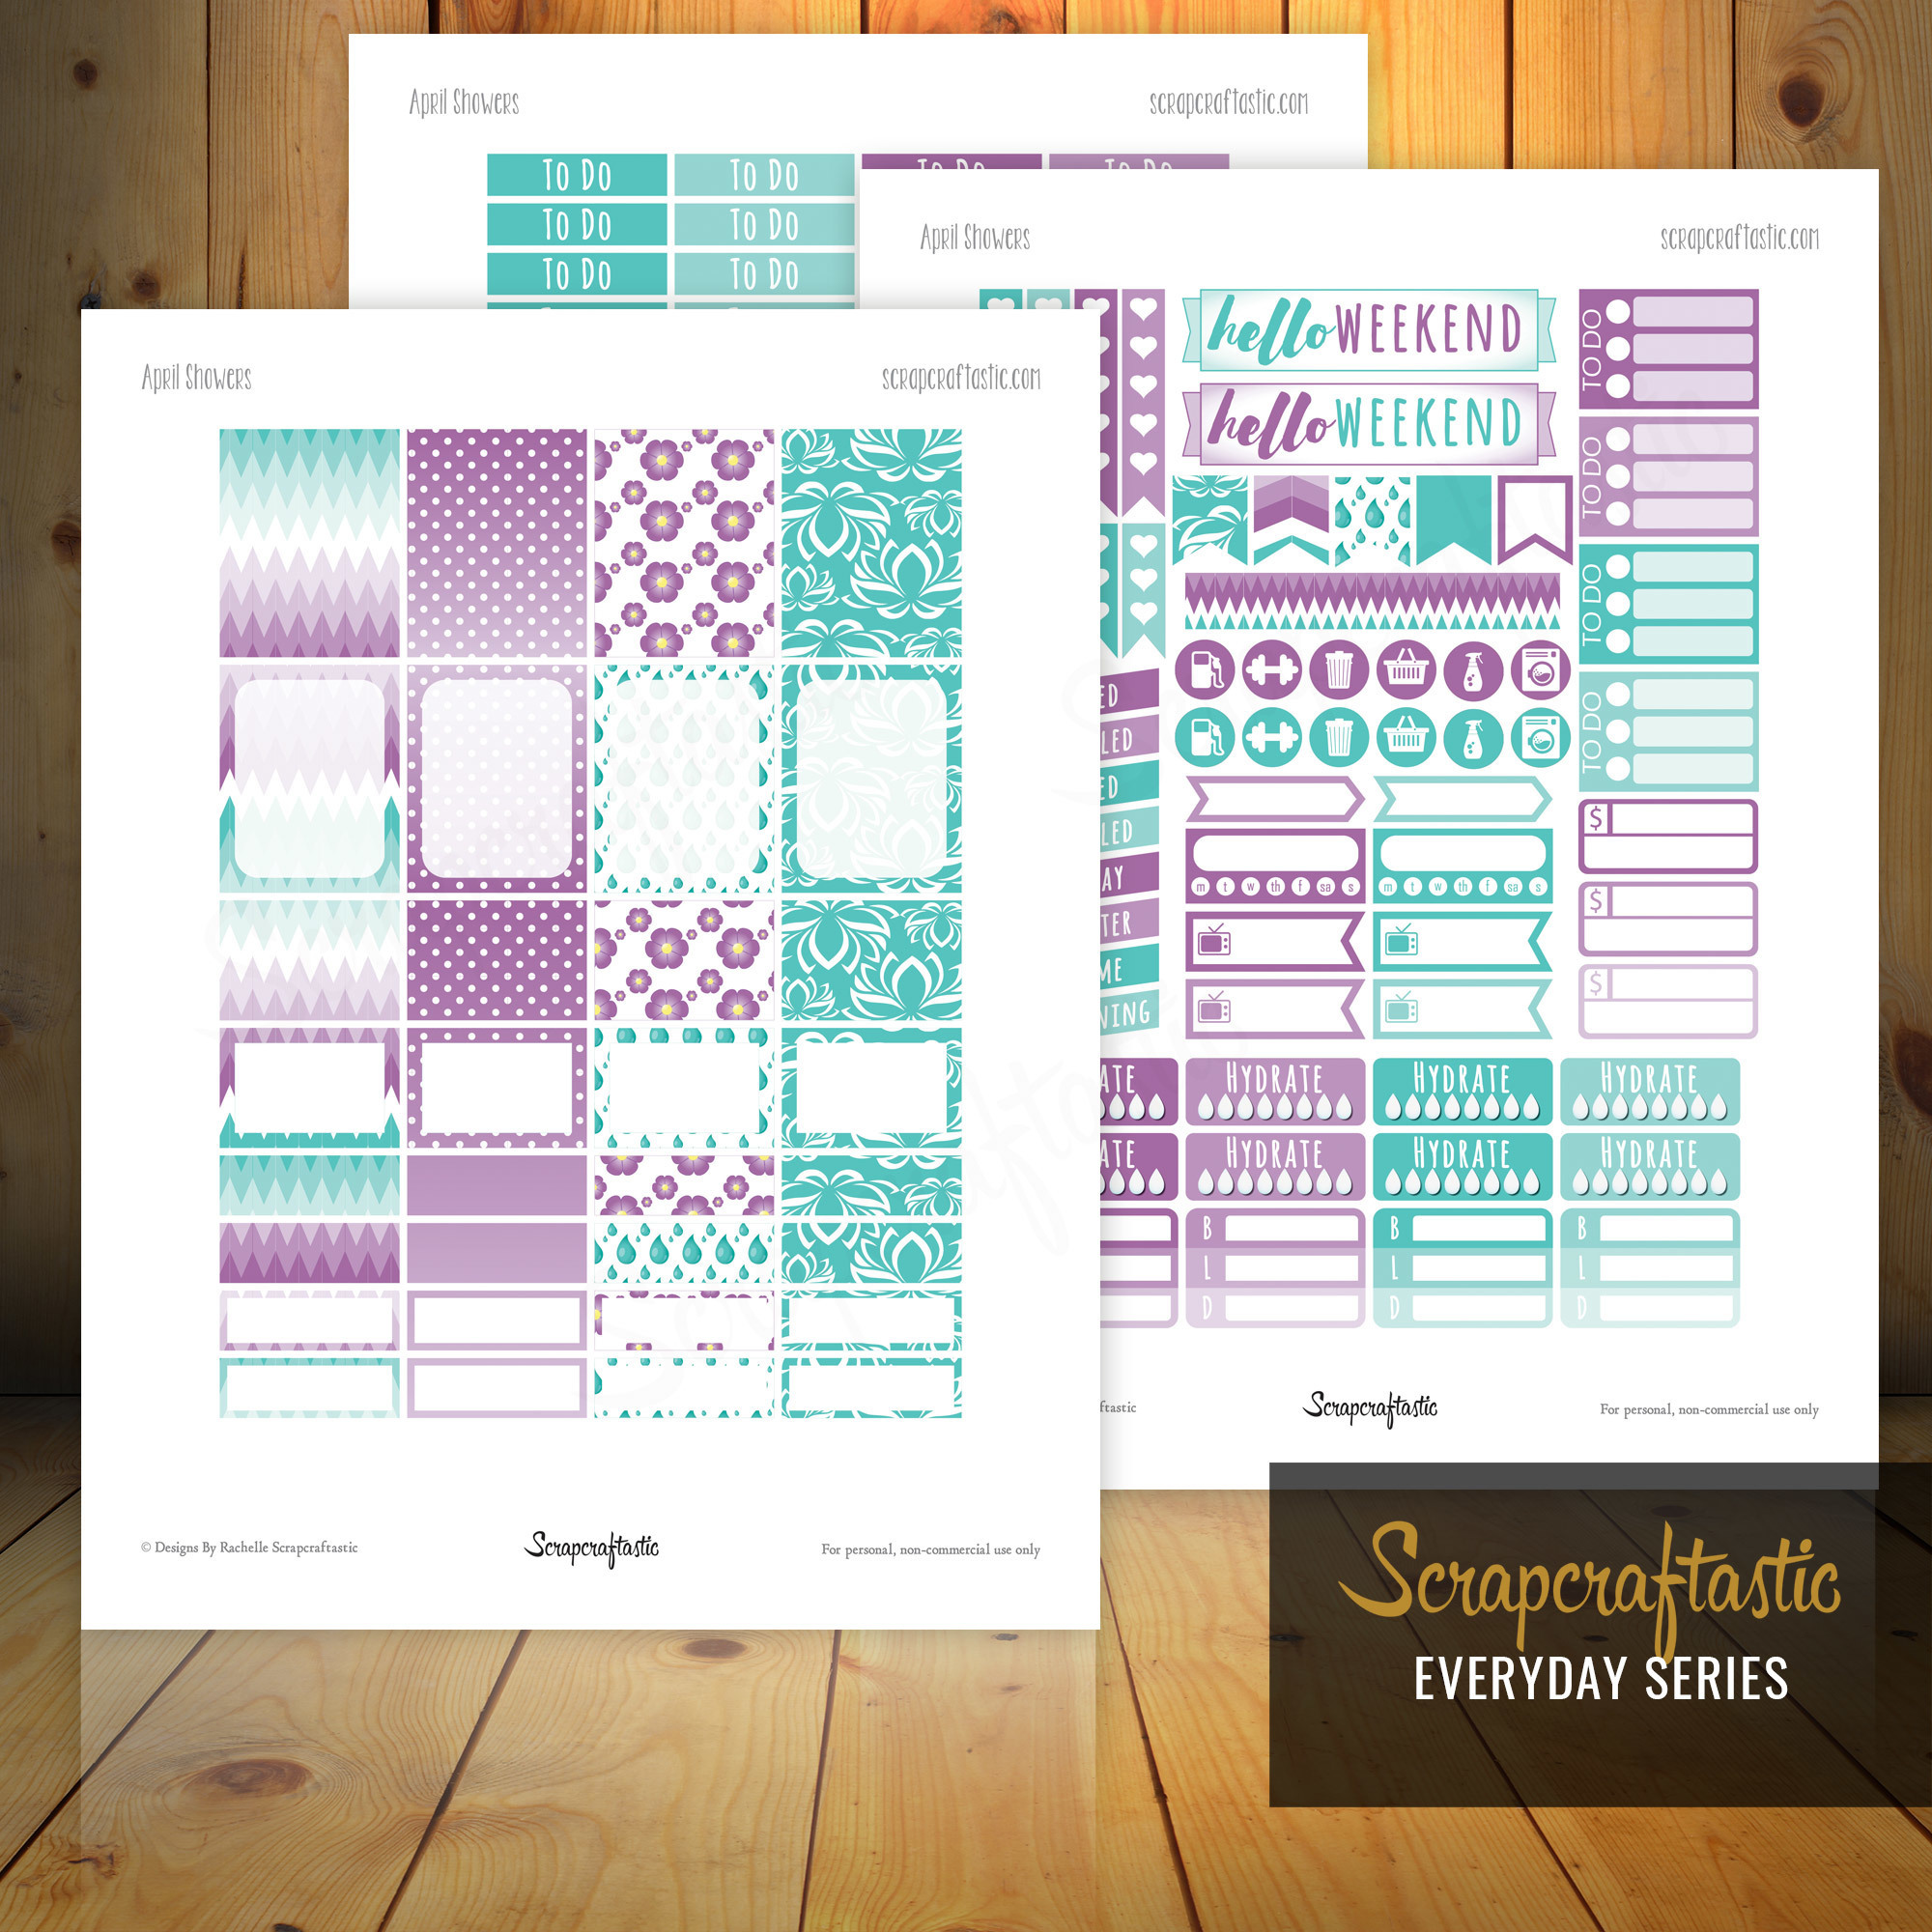 April Showers Printable Planner Stickers for Erin Condren Planner dbr_april_2016